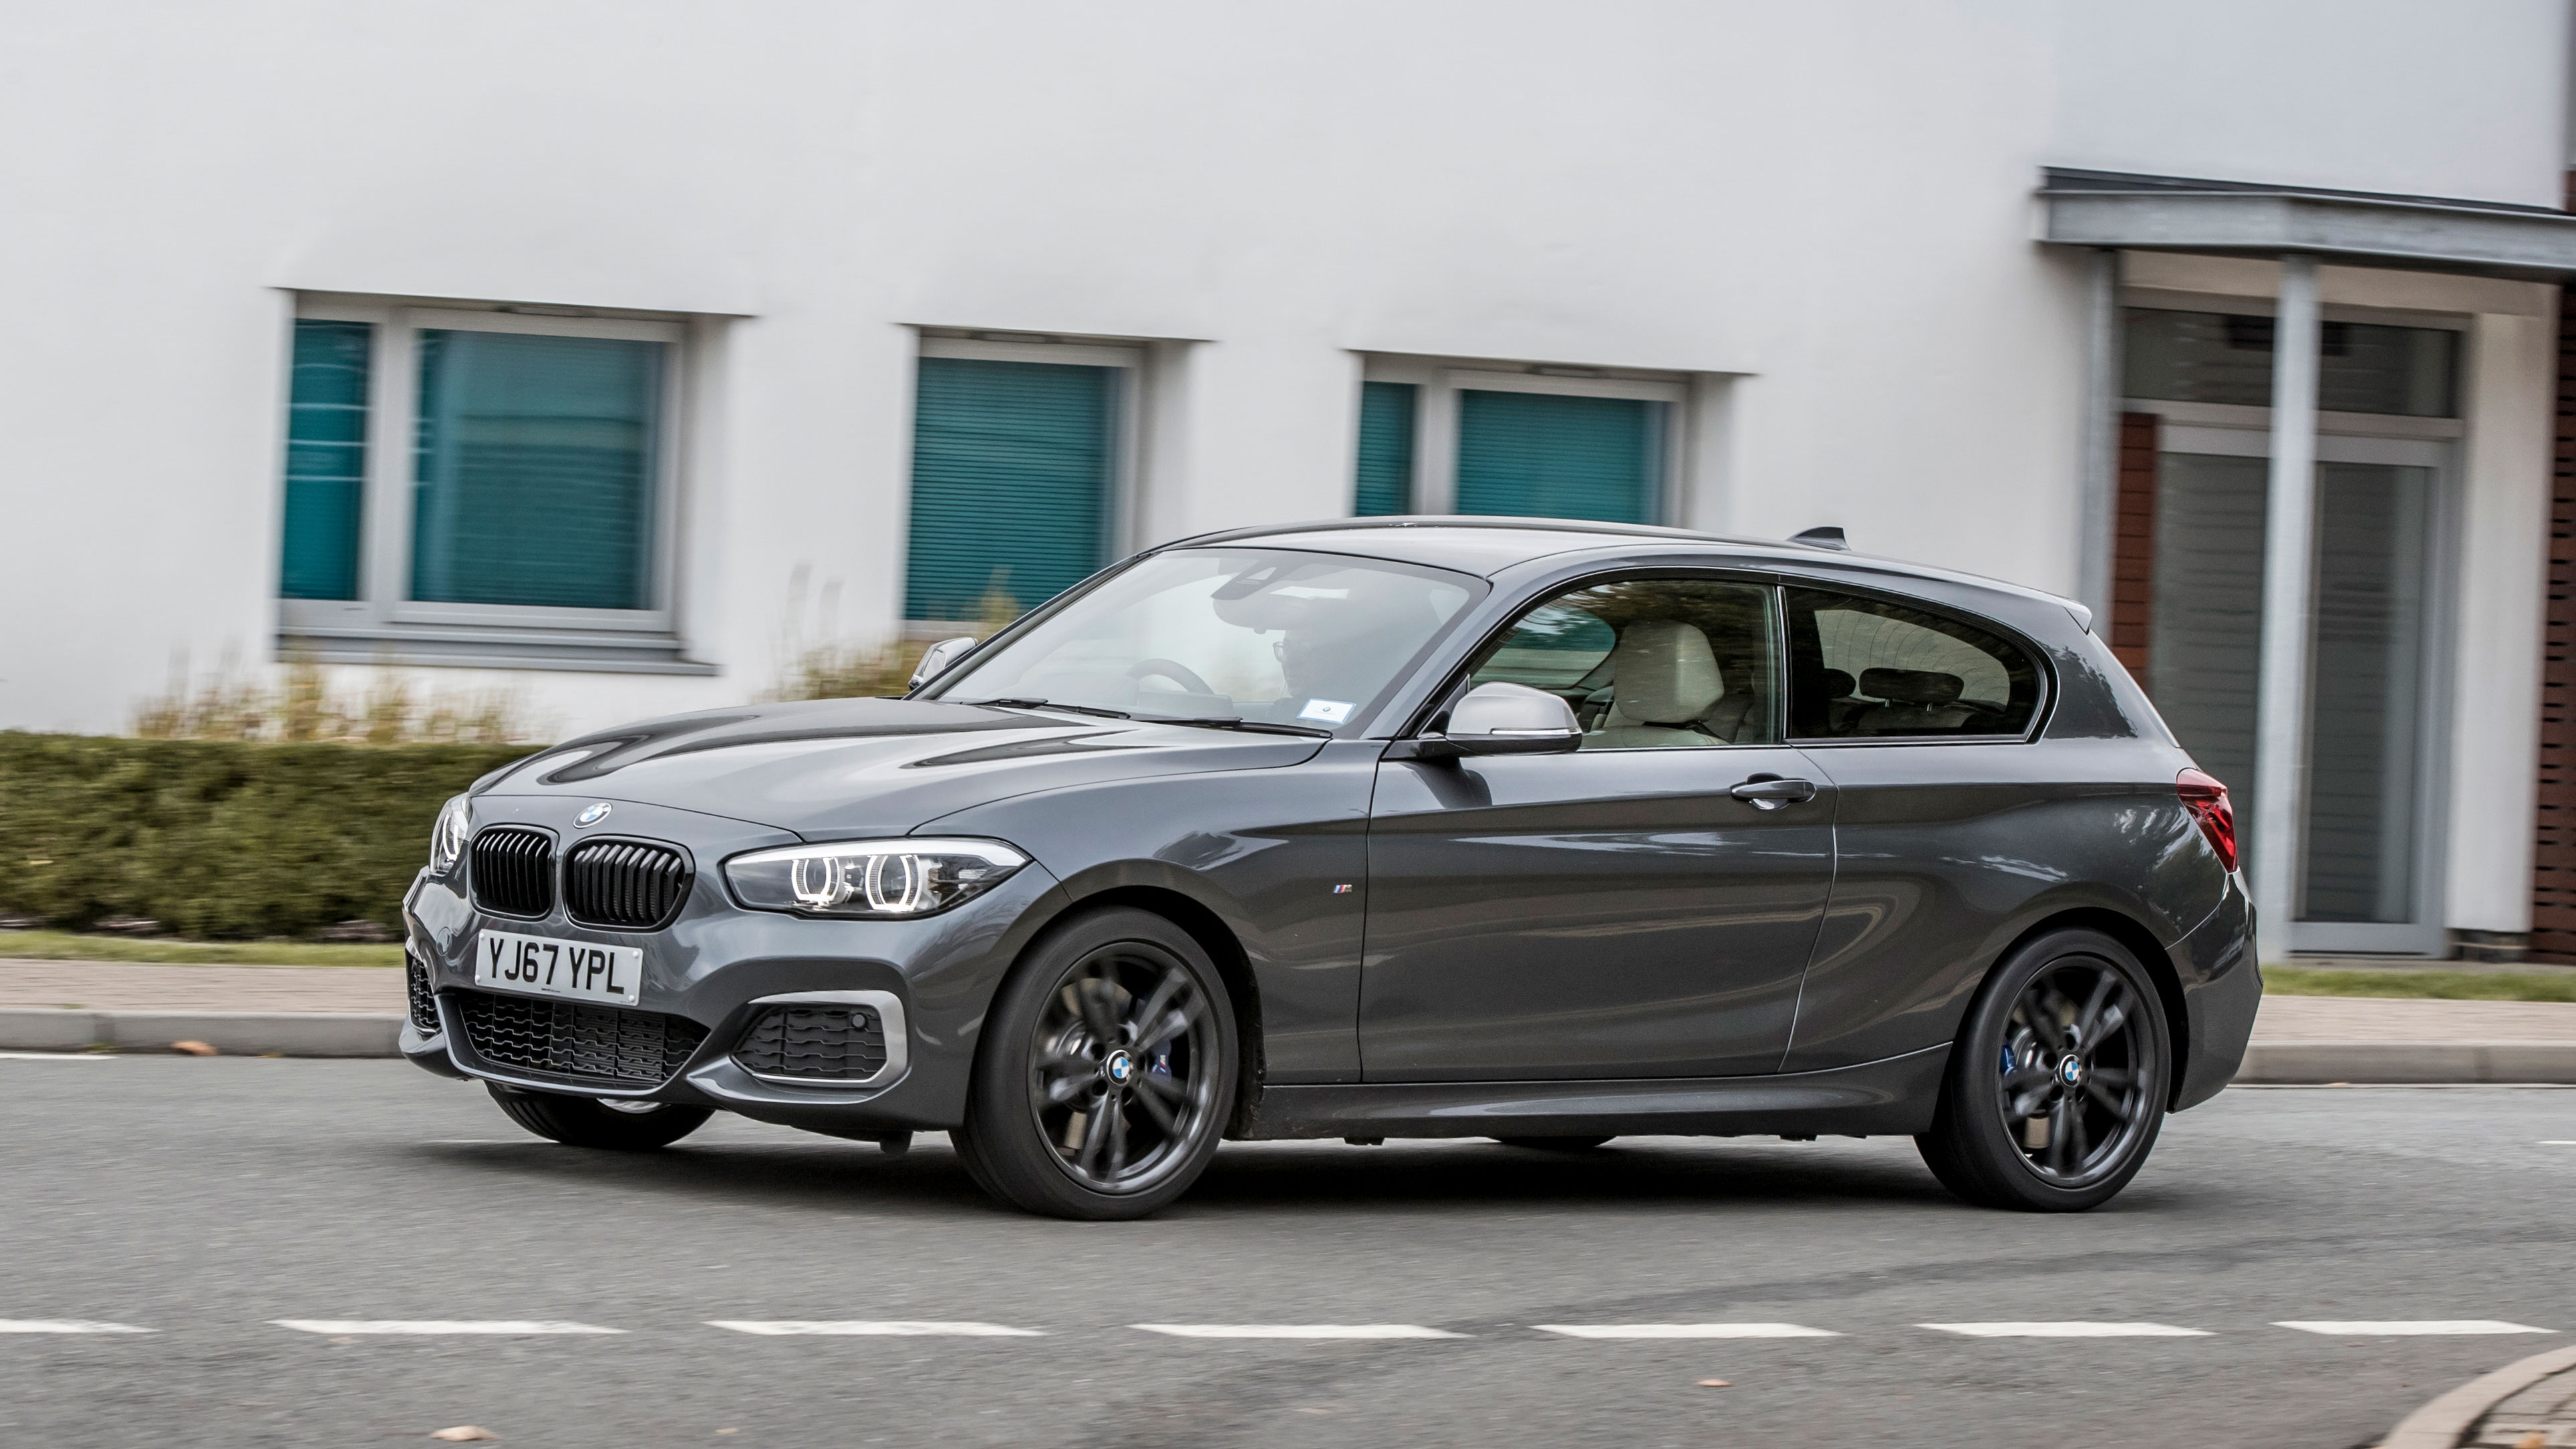 Cheap Bmw 1 Series Cars For Sale Autotrader Uk